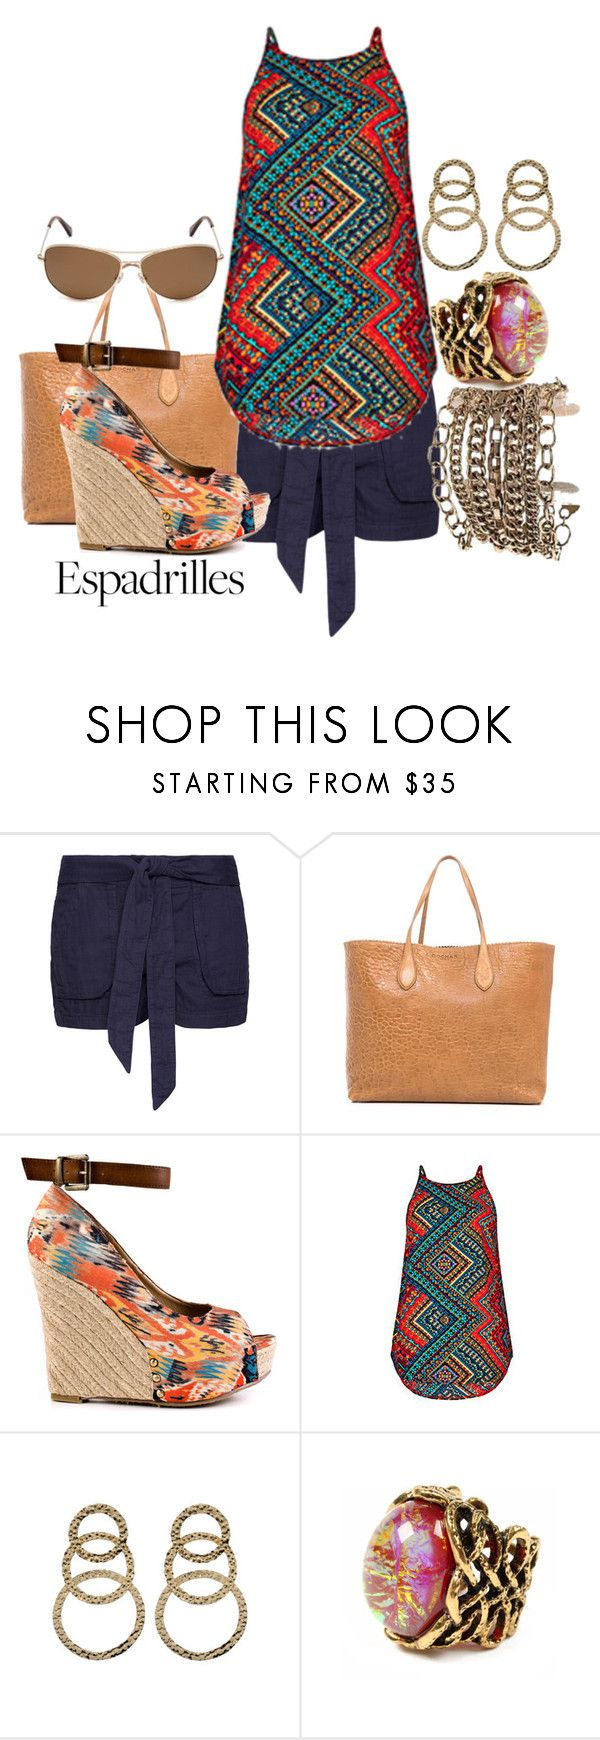 """Untitled #471"" by frederick-danielle on Polyvore featuring MANGO, Rochas, Chinese Laundry, Amrita Singh and Kate Spade"